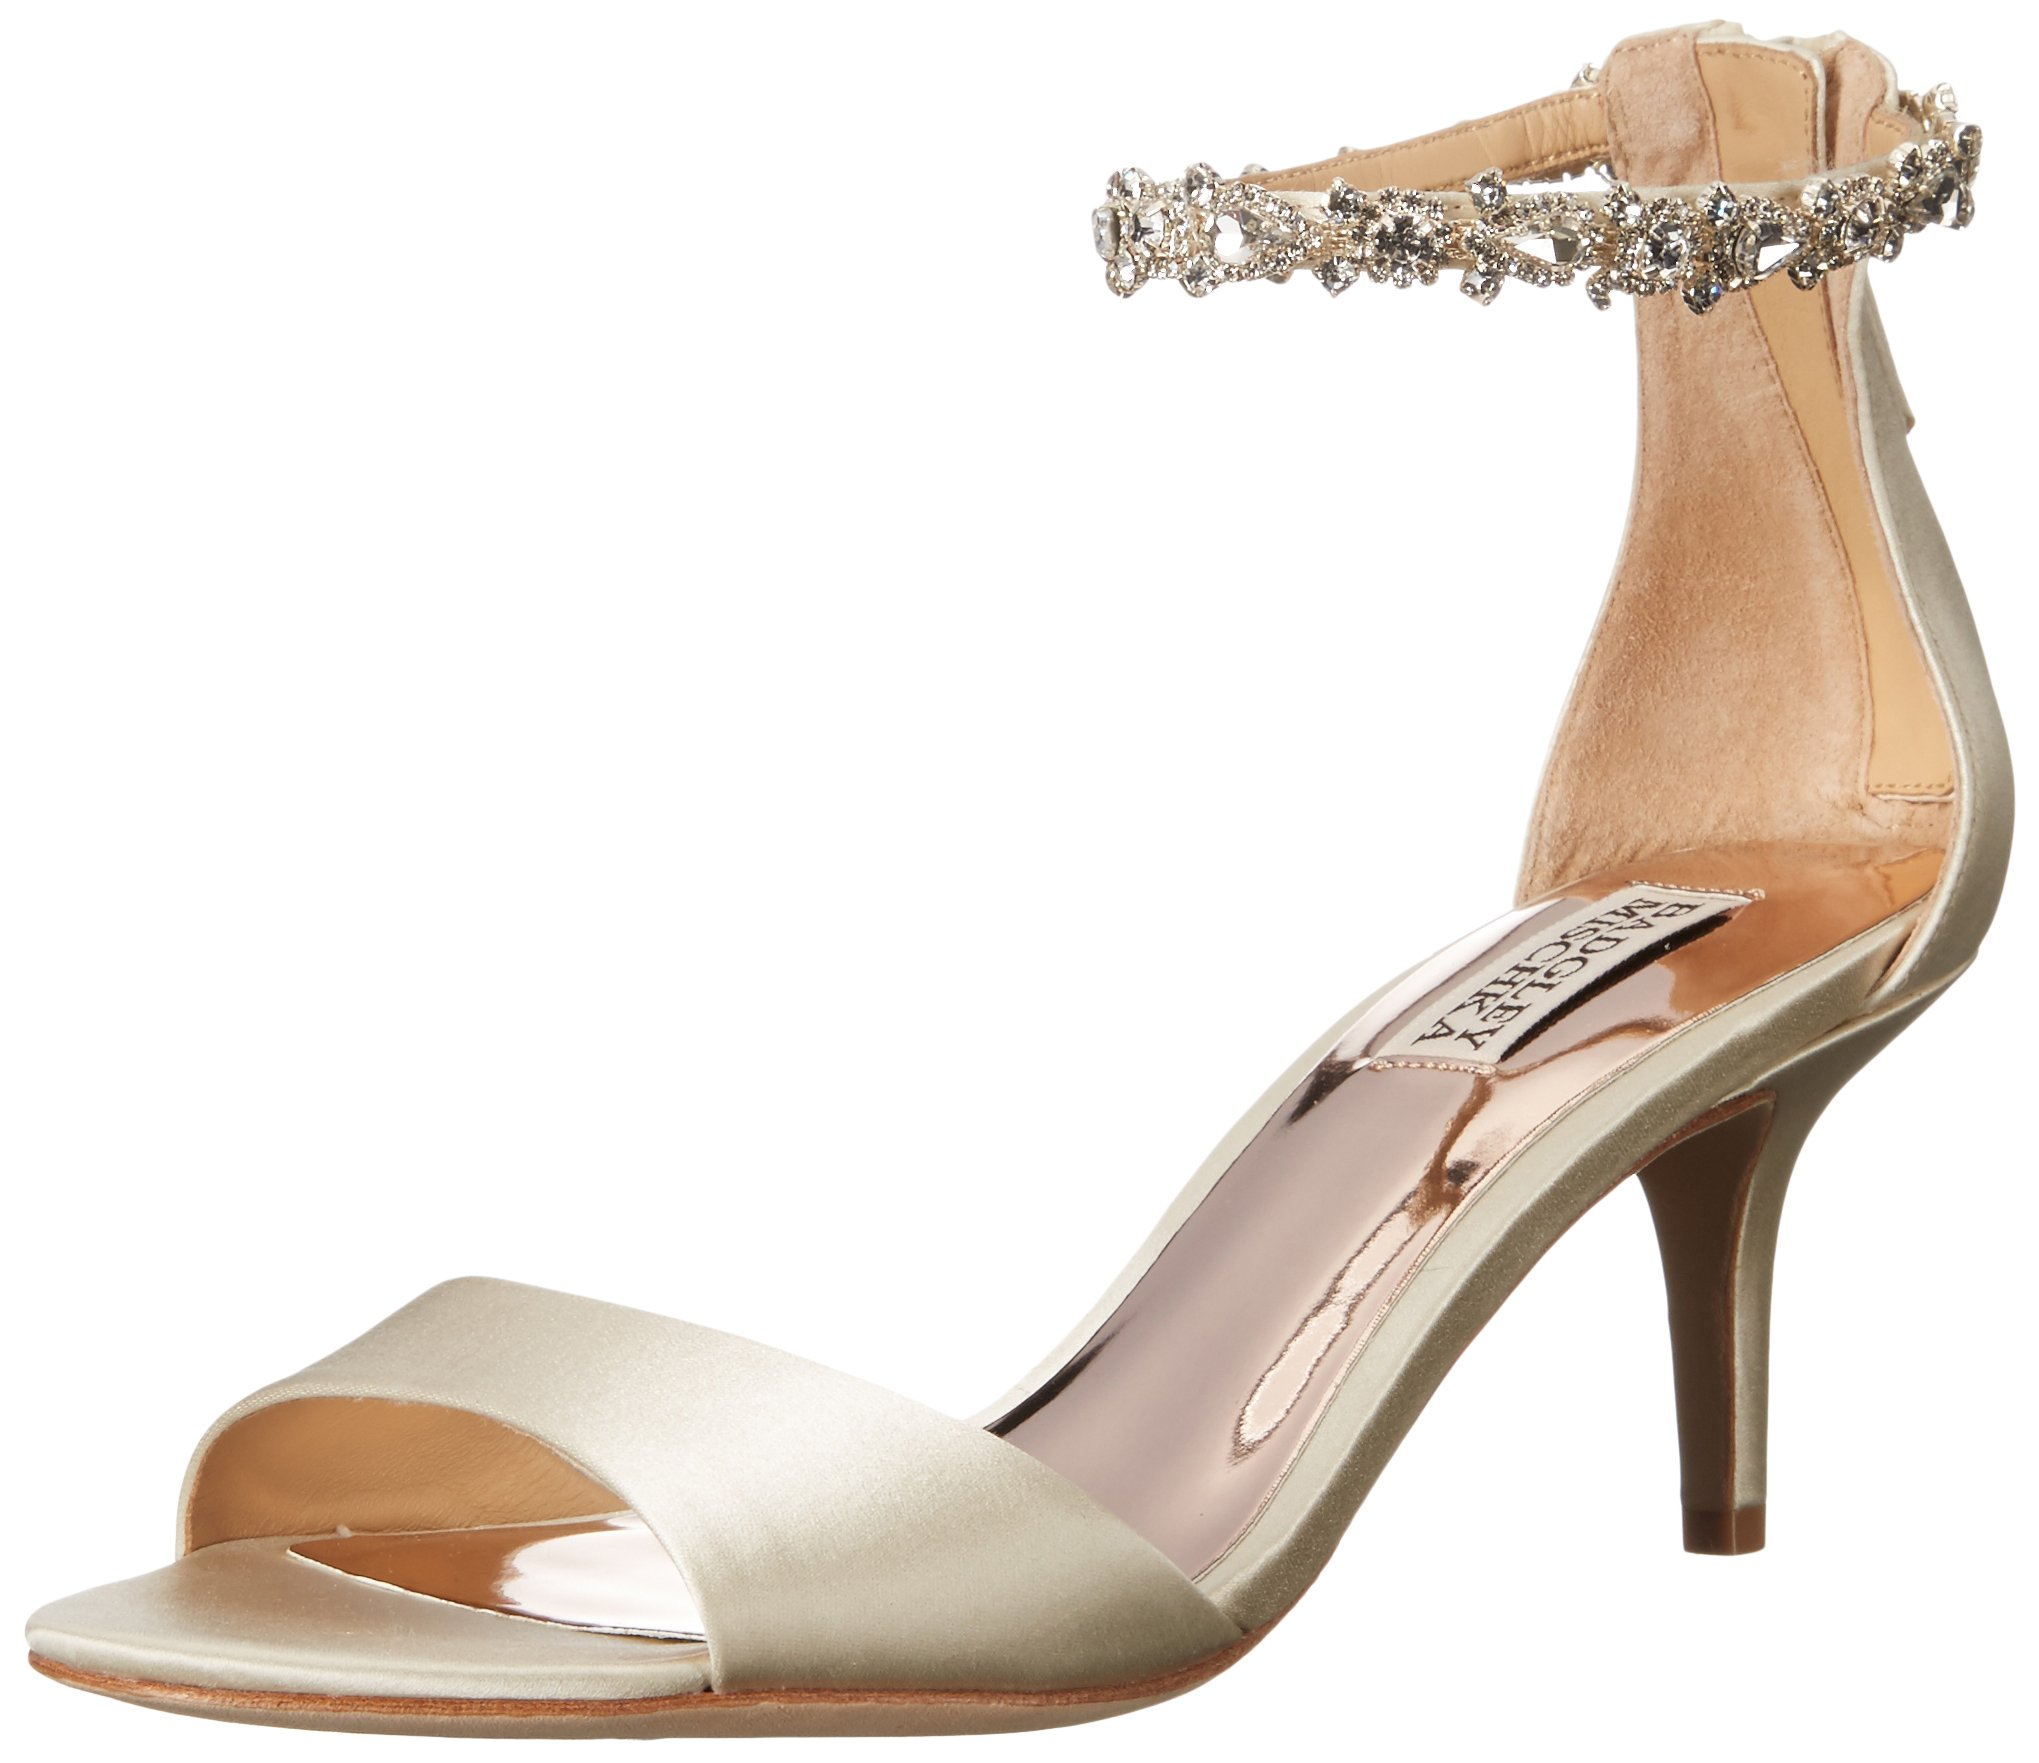 Badgley Mischka Women's Geranium Heeled Sandal, Ivory, 8.5 Medium US